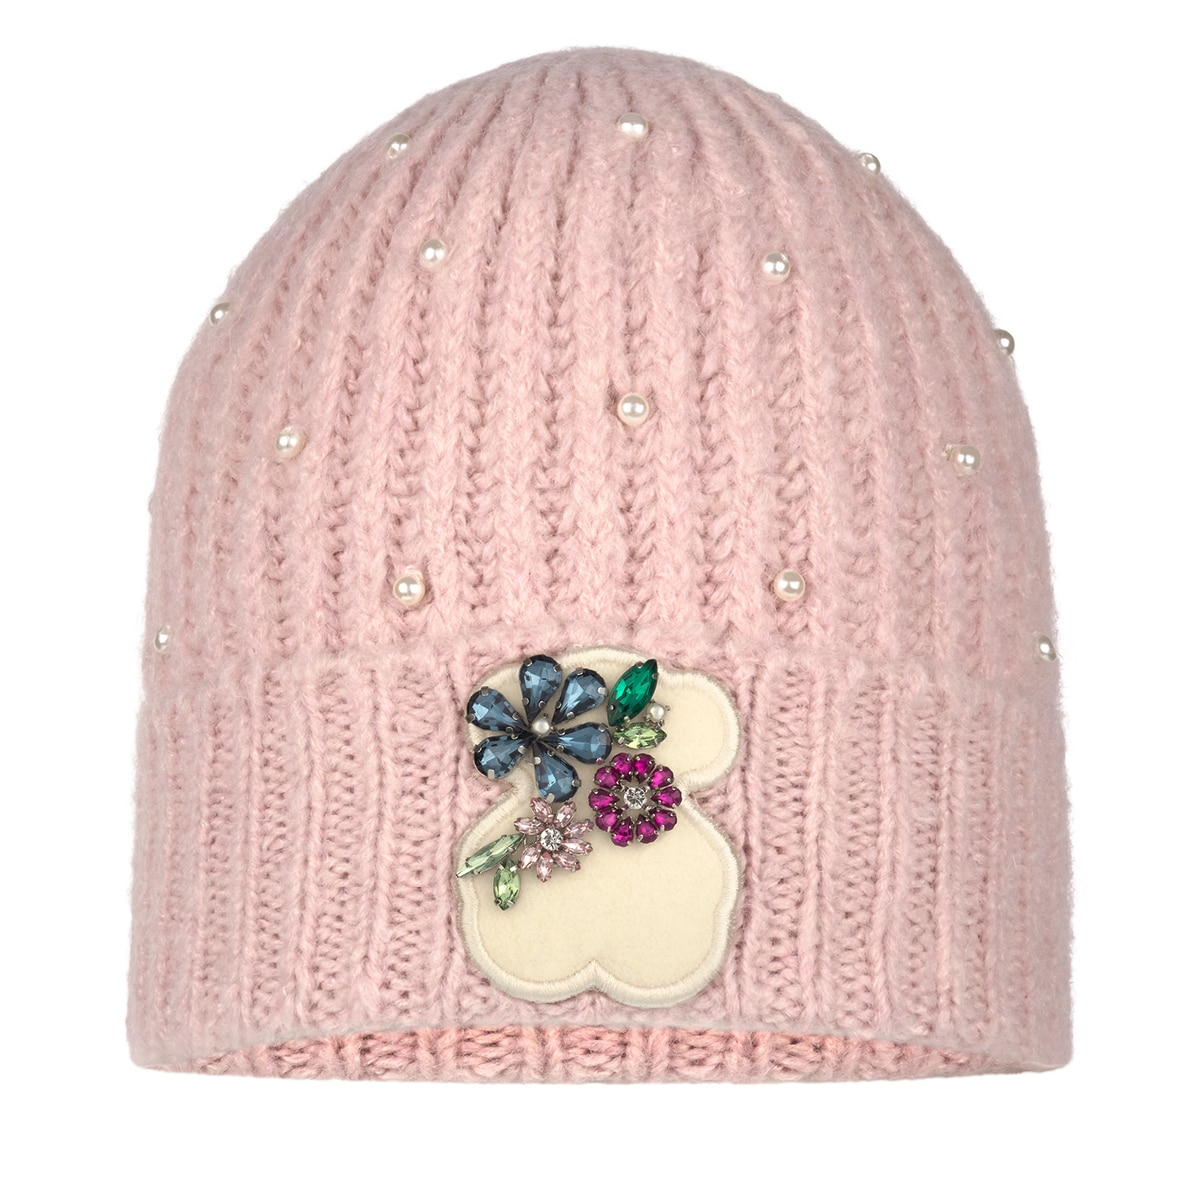 Bennie Billy beanie light pink